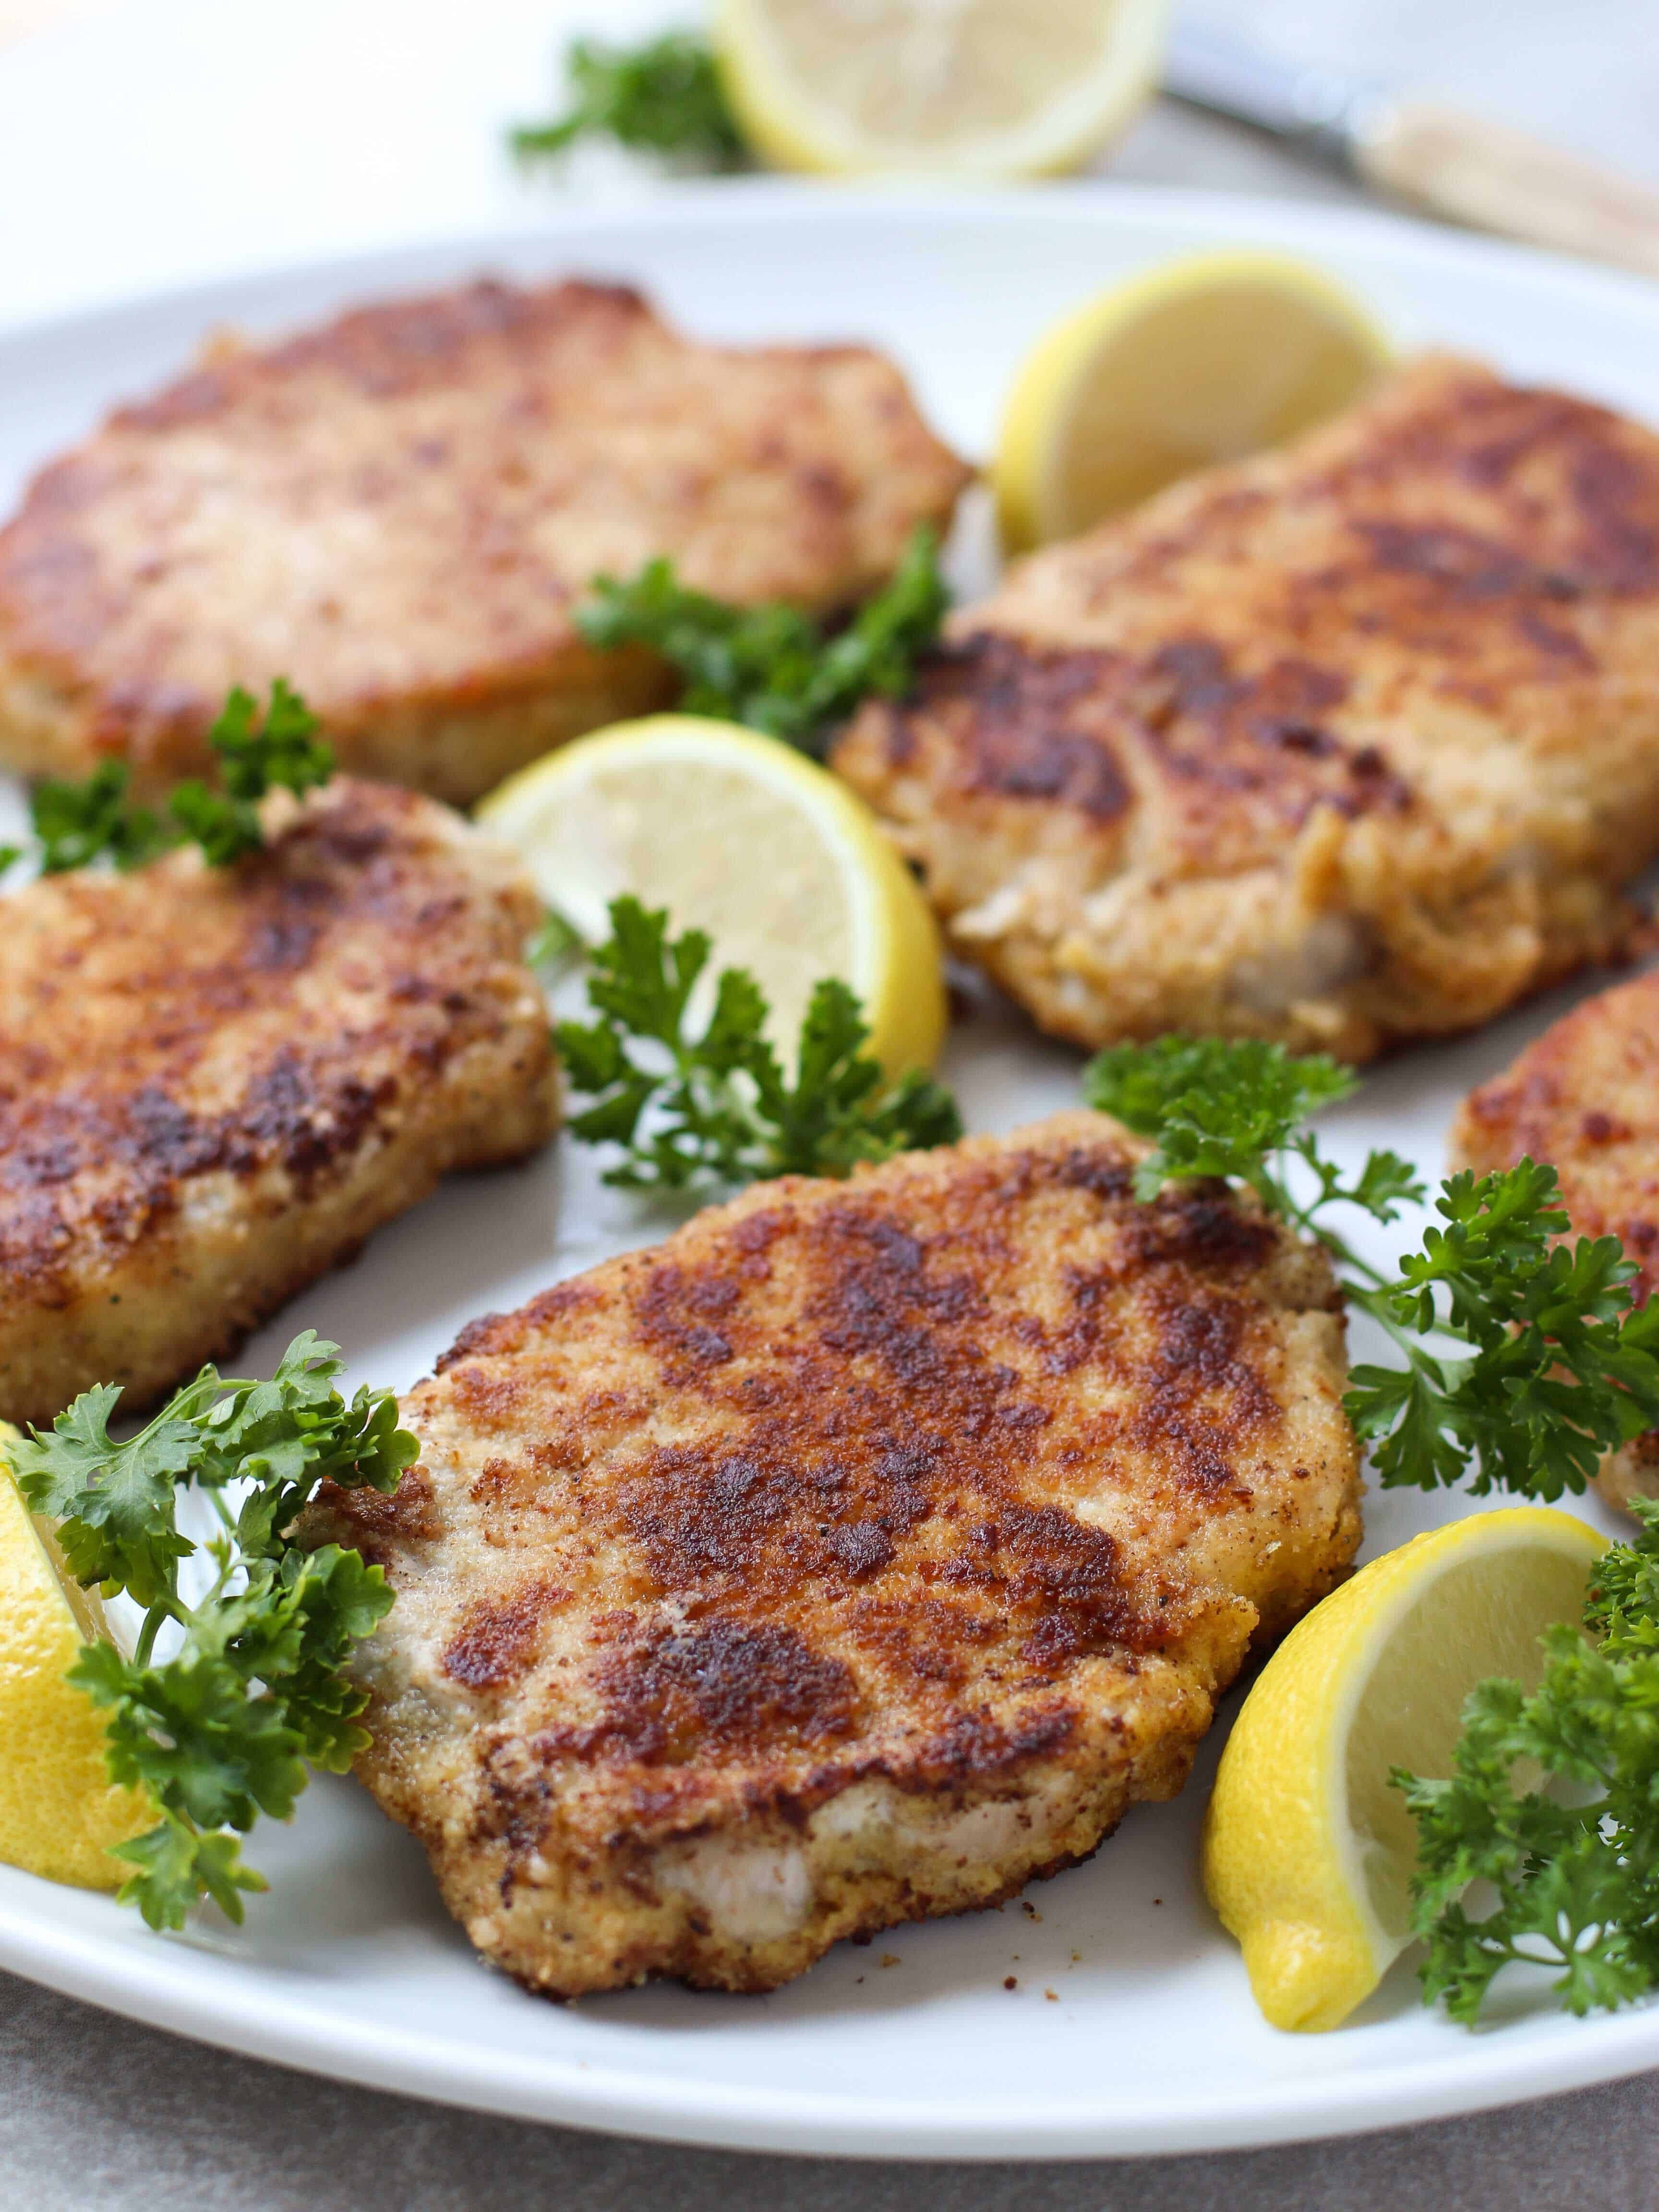 Lemon Butter Parmesan Crusted Pork Chops